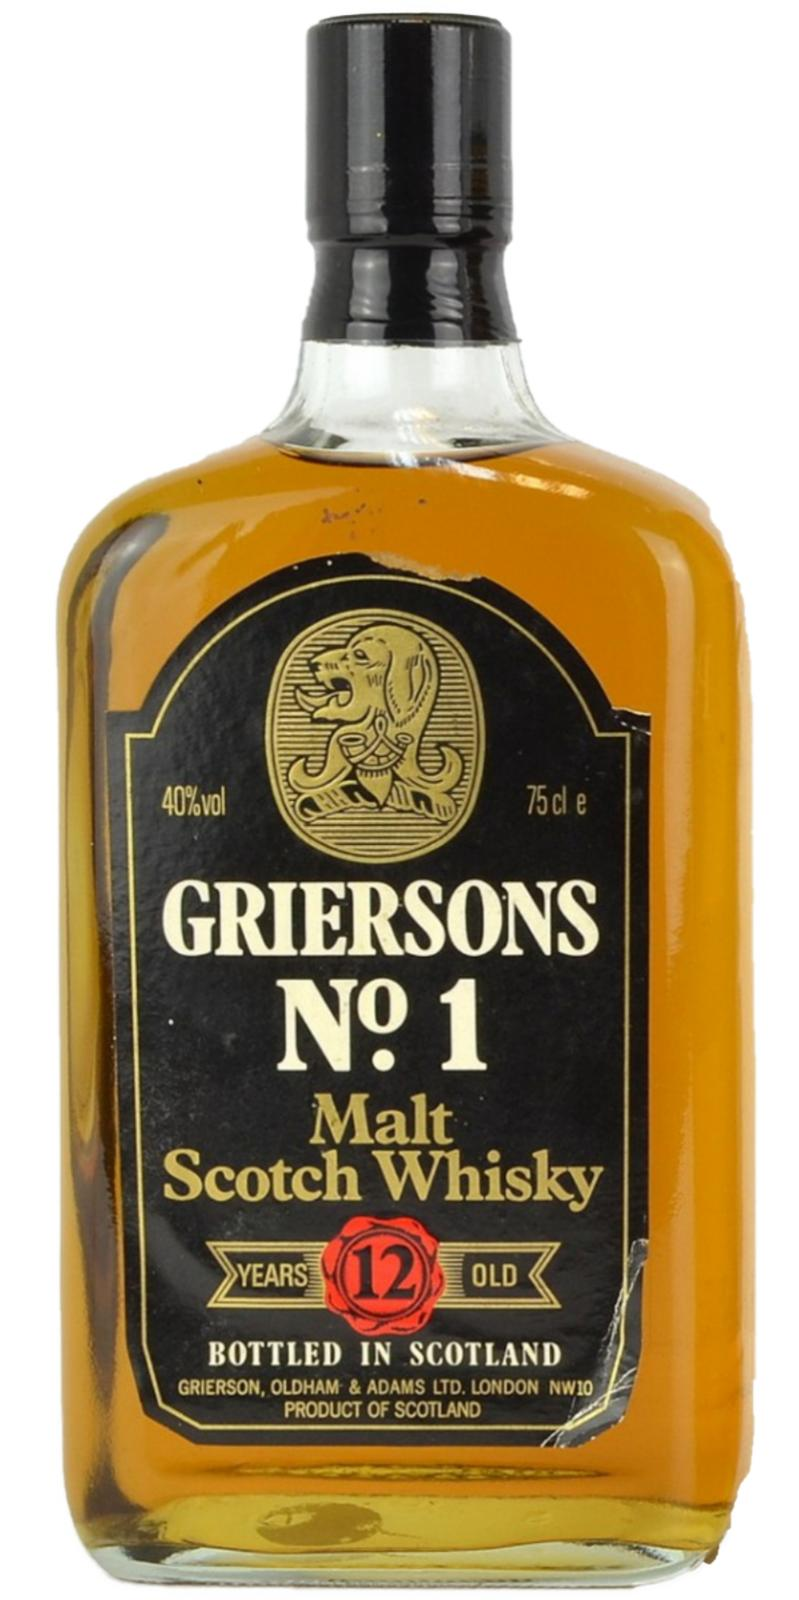 Griersons No.1 12-year-old